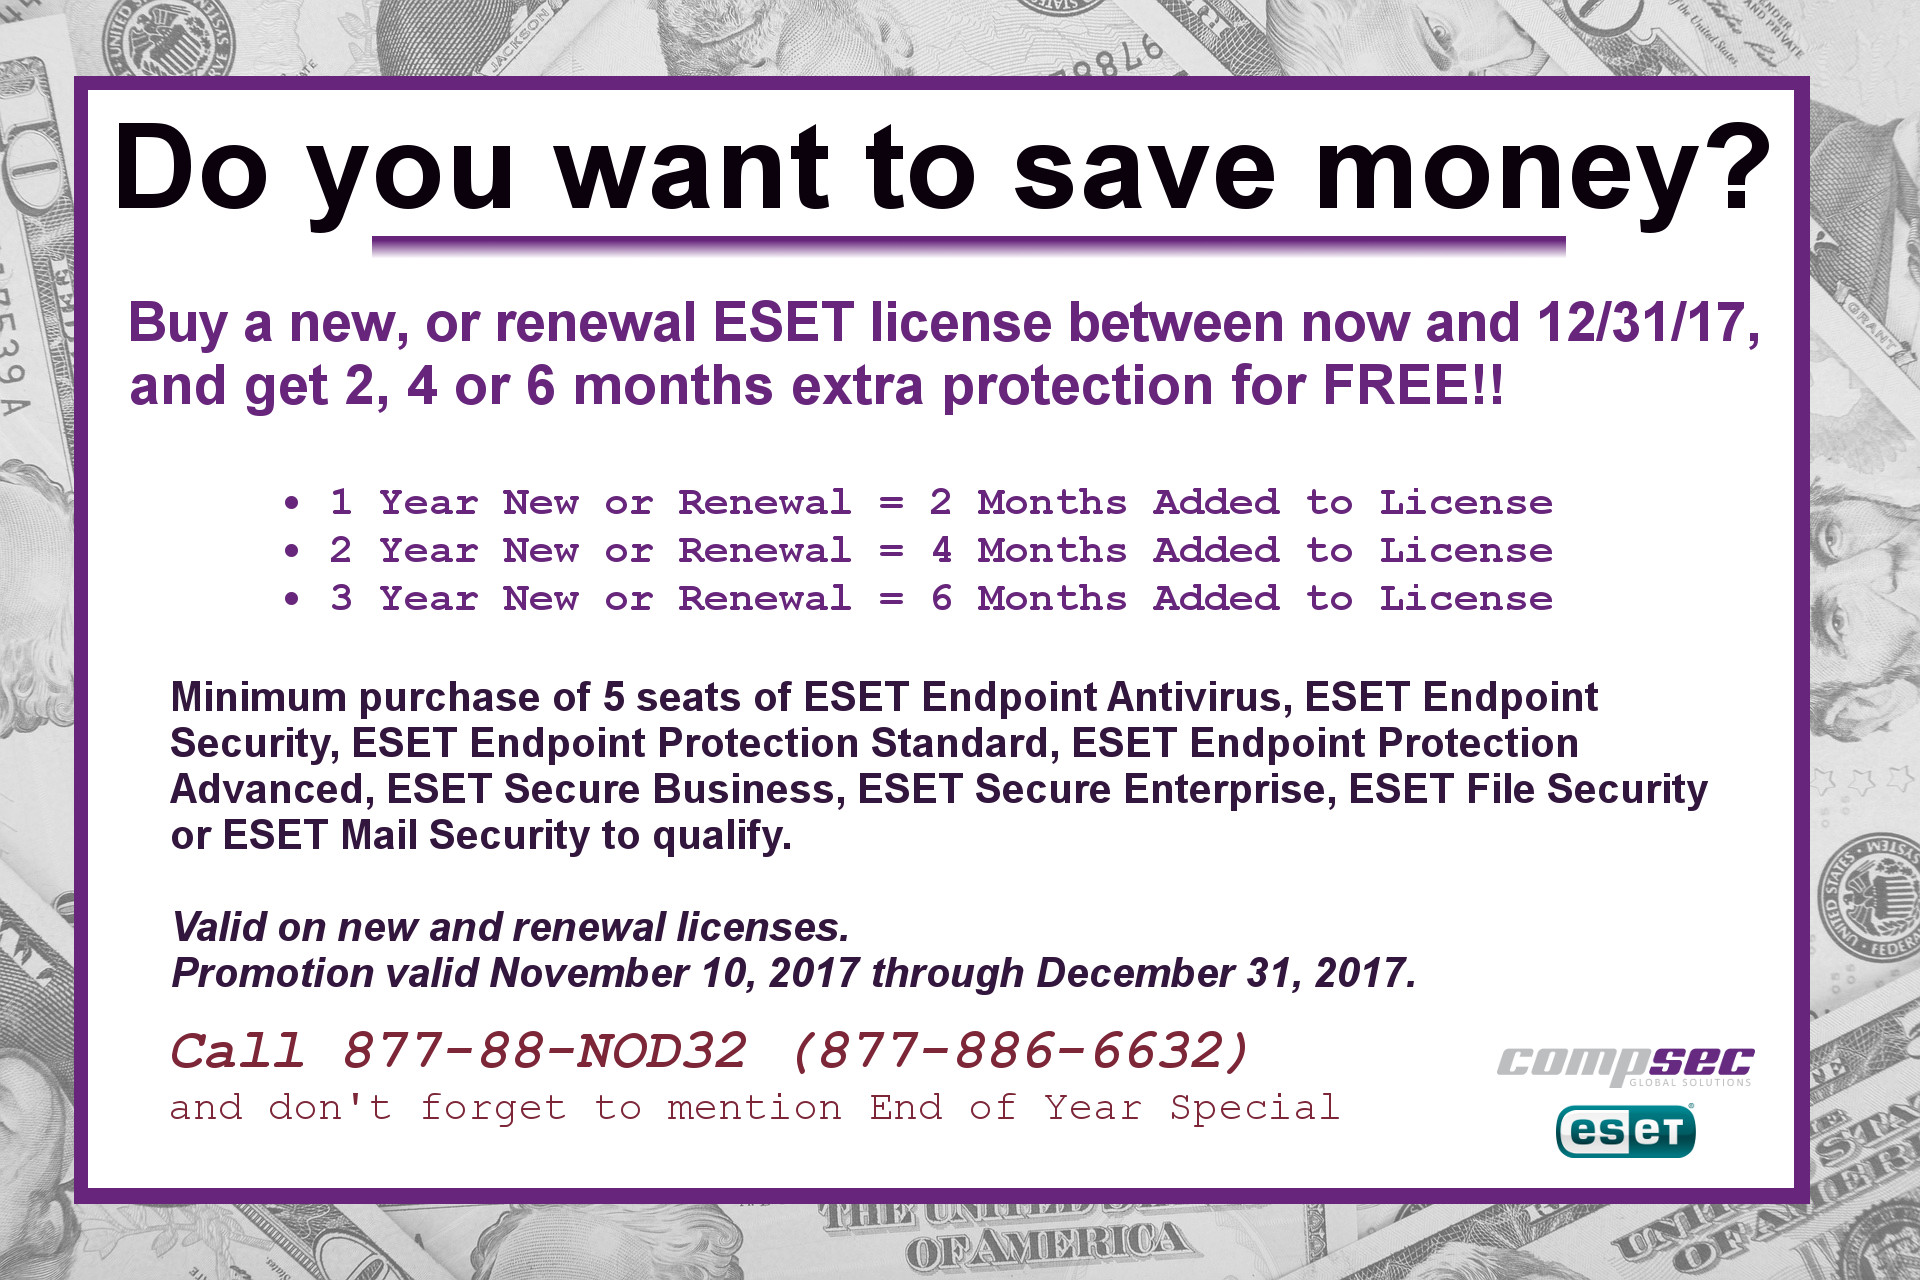 Save on ESET with the end of year Promotion: 2, 4 or 6